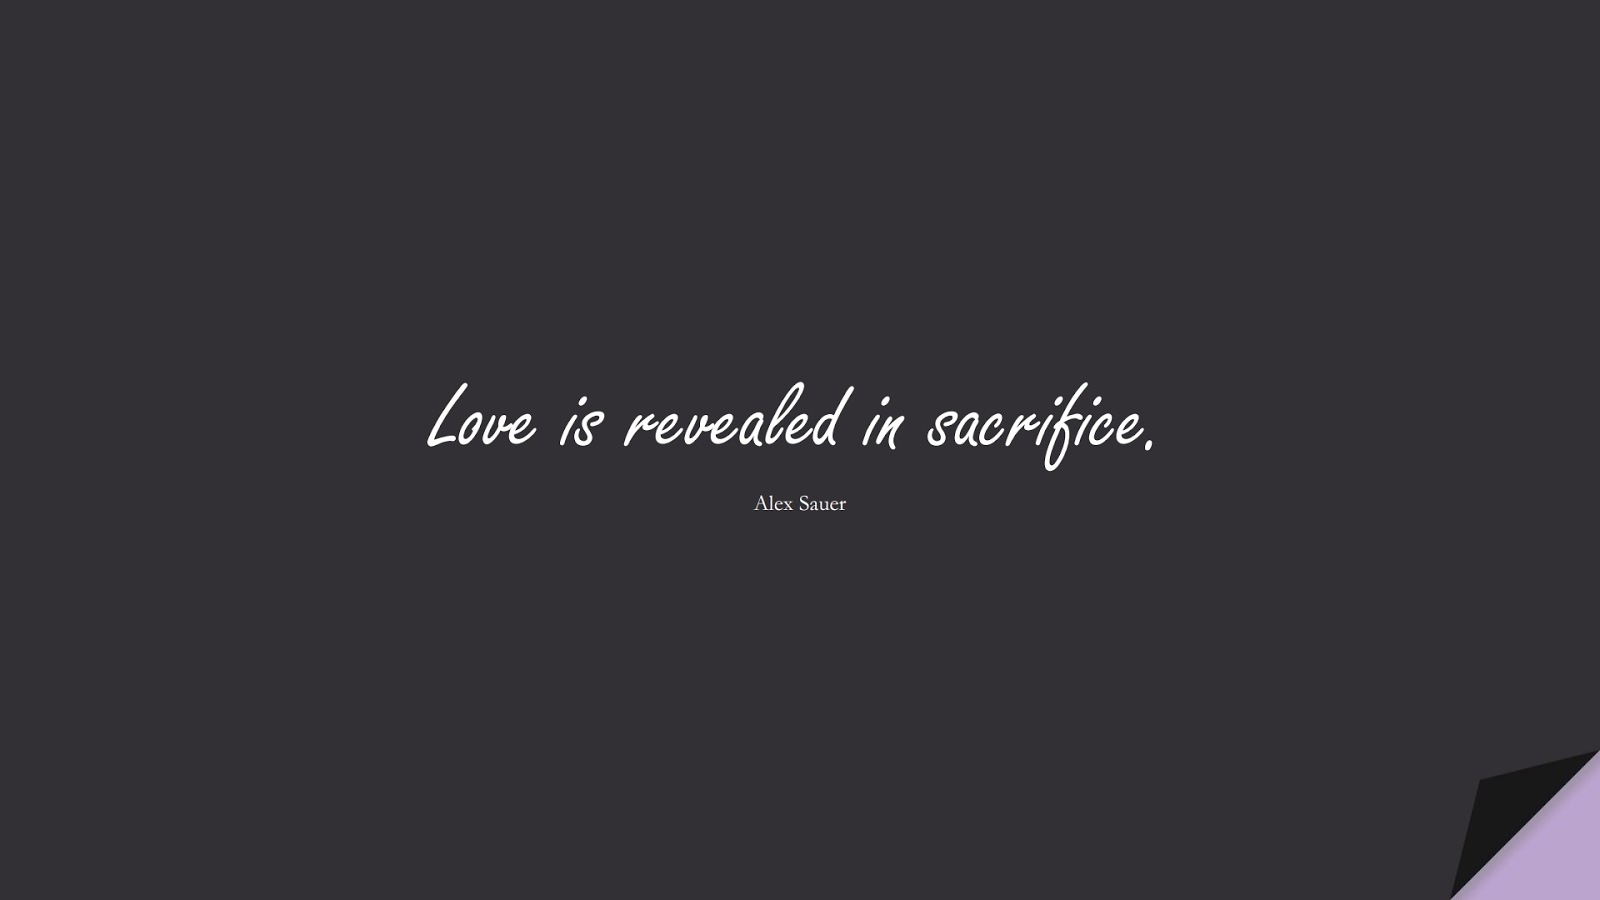 Love is revealed in sacrifice. (Alex Sauer);  #LoveQuotes